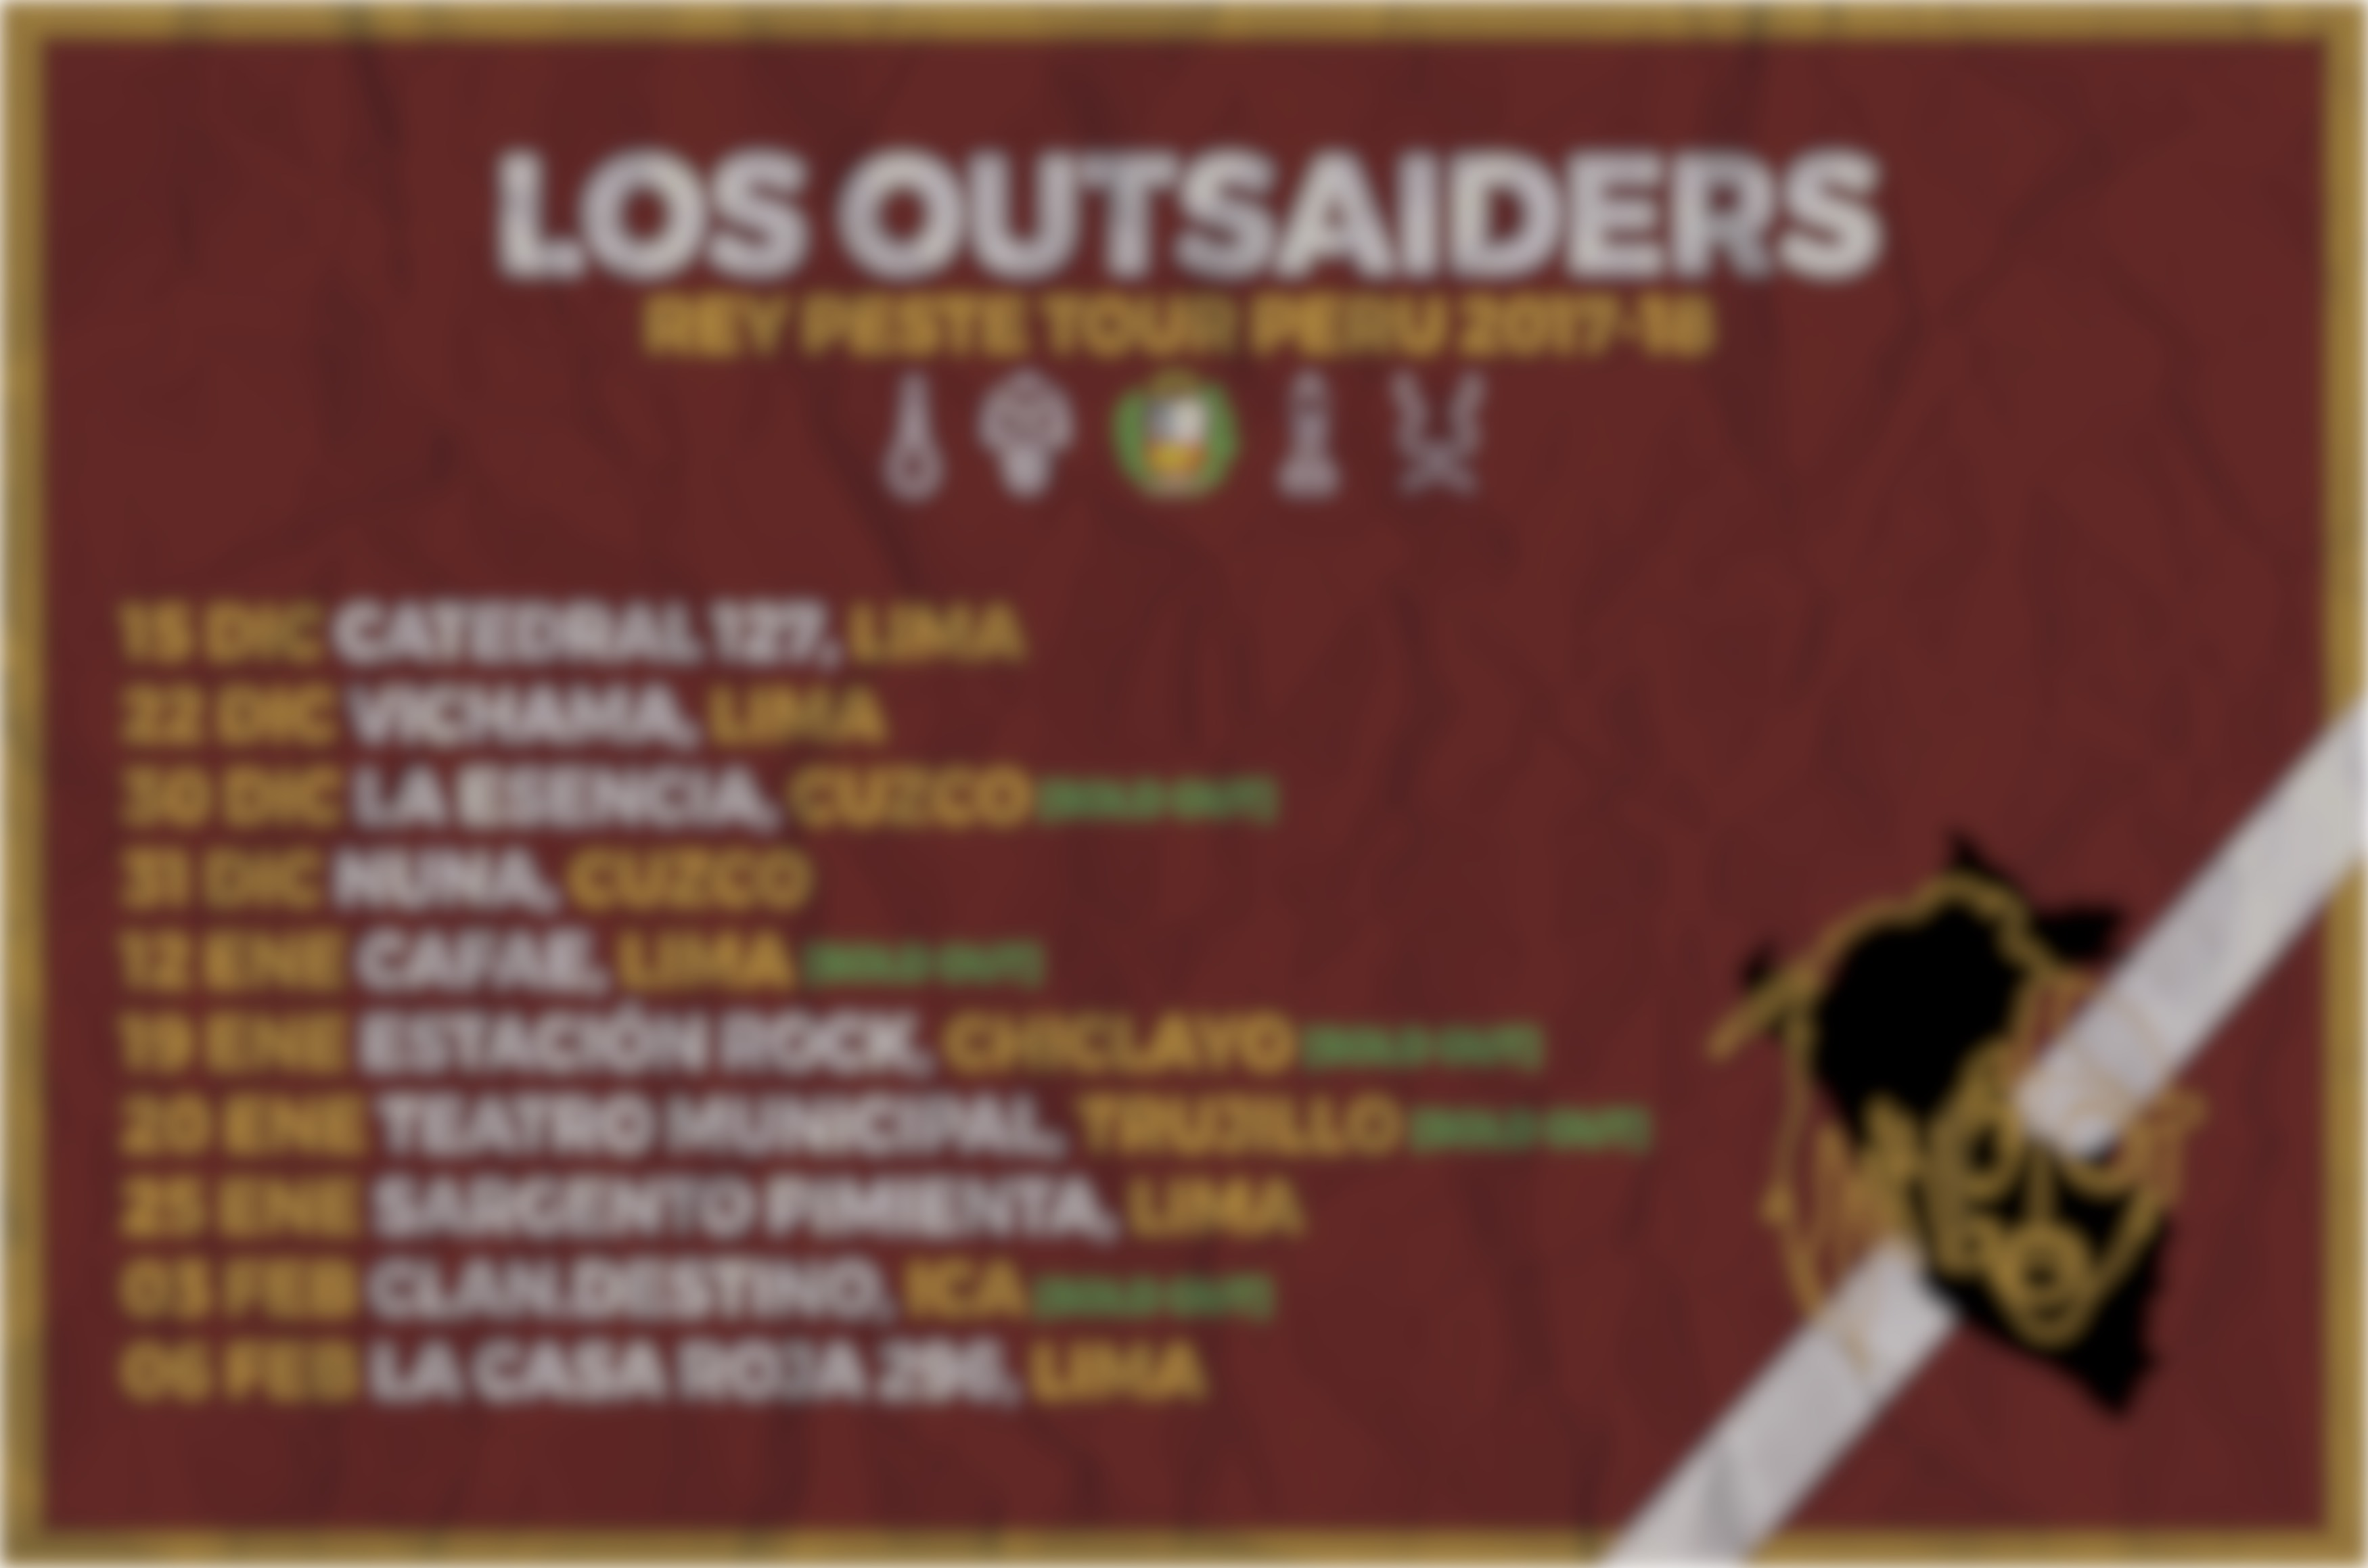 LOS OUTSAIDERS EN TRUJILLO (VIDEO)